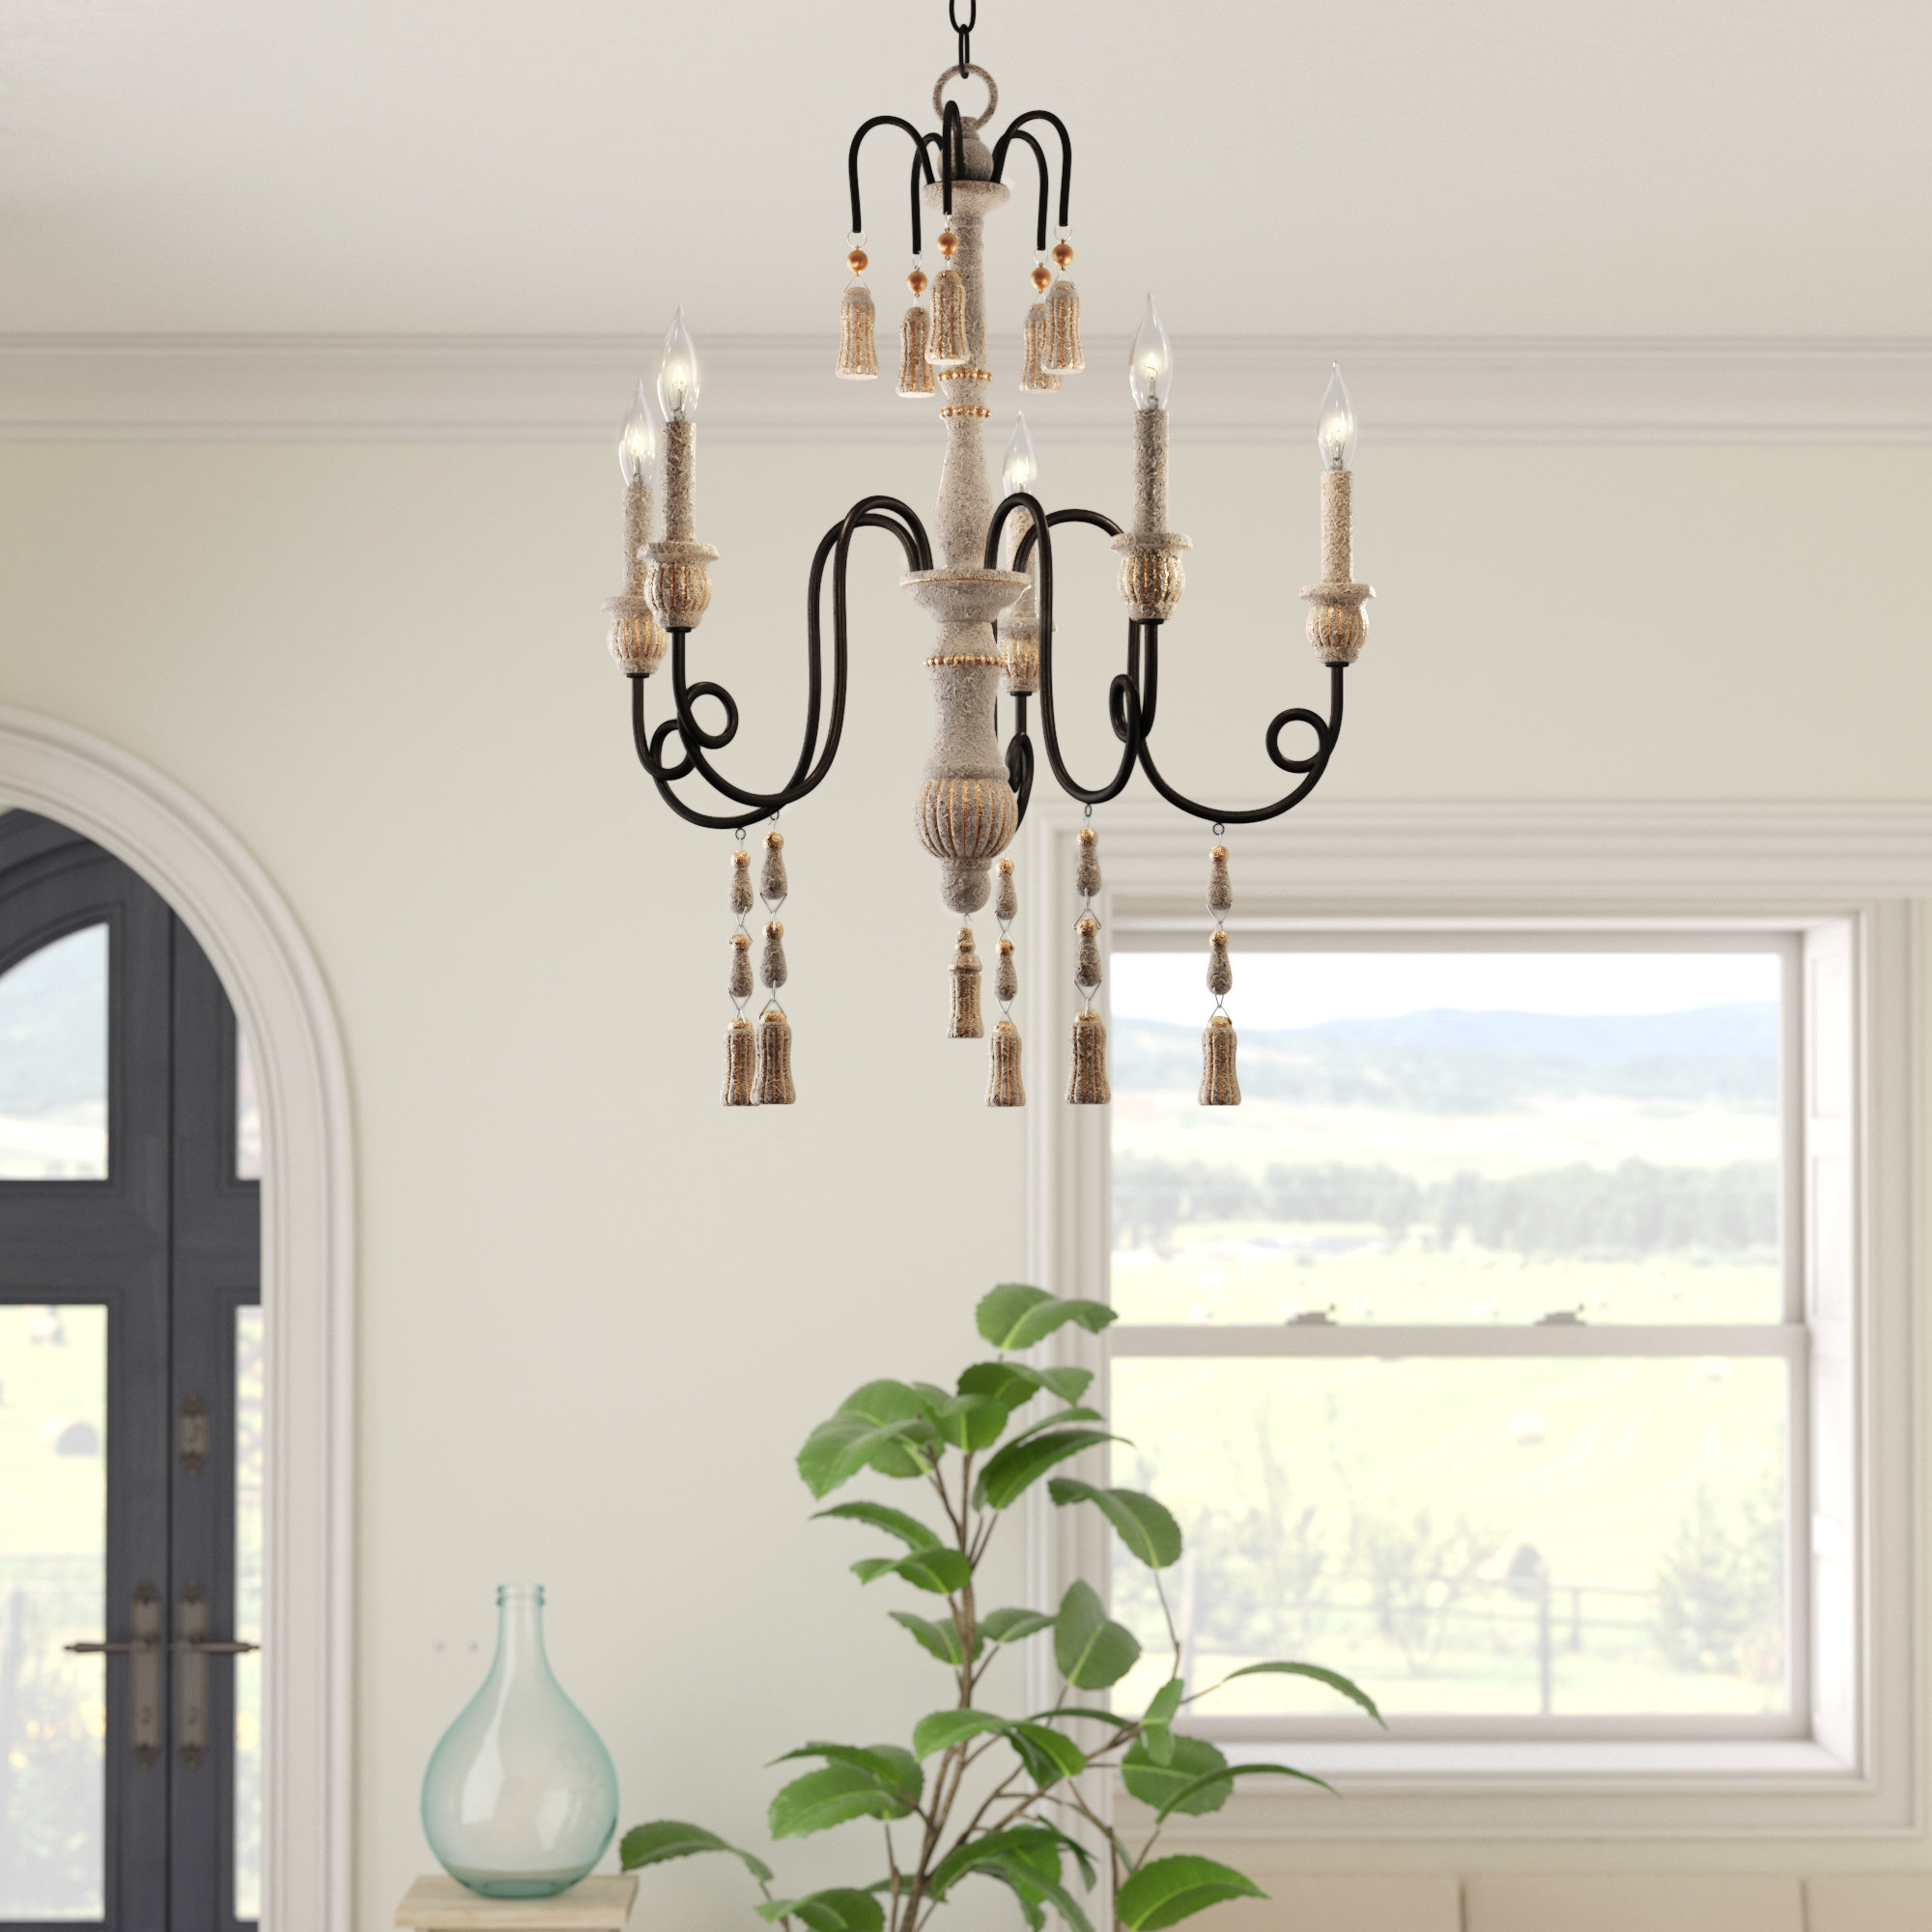 Hassan 5-Light Candle Style Chandelier within Armande Candle Style Chandeliers (Image 21 of 30)